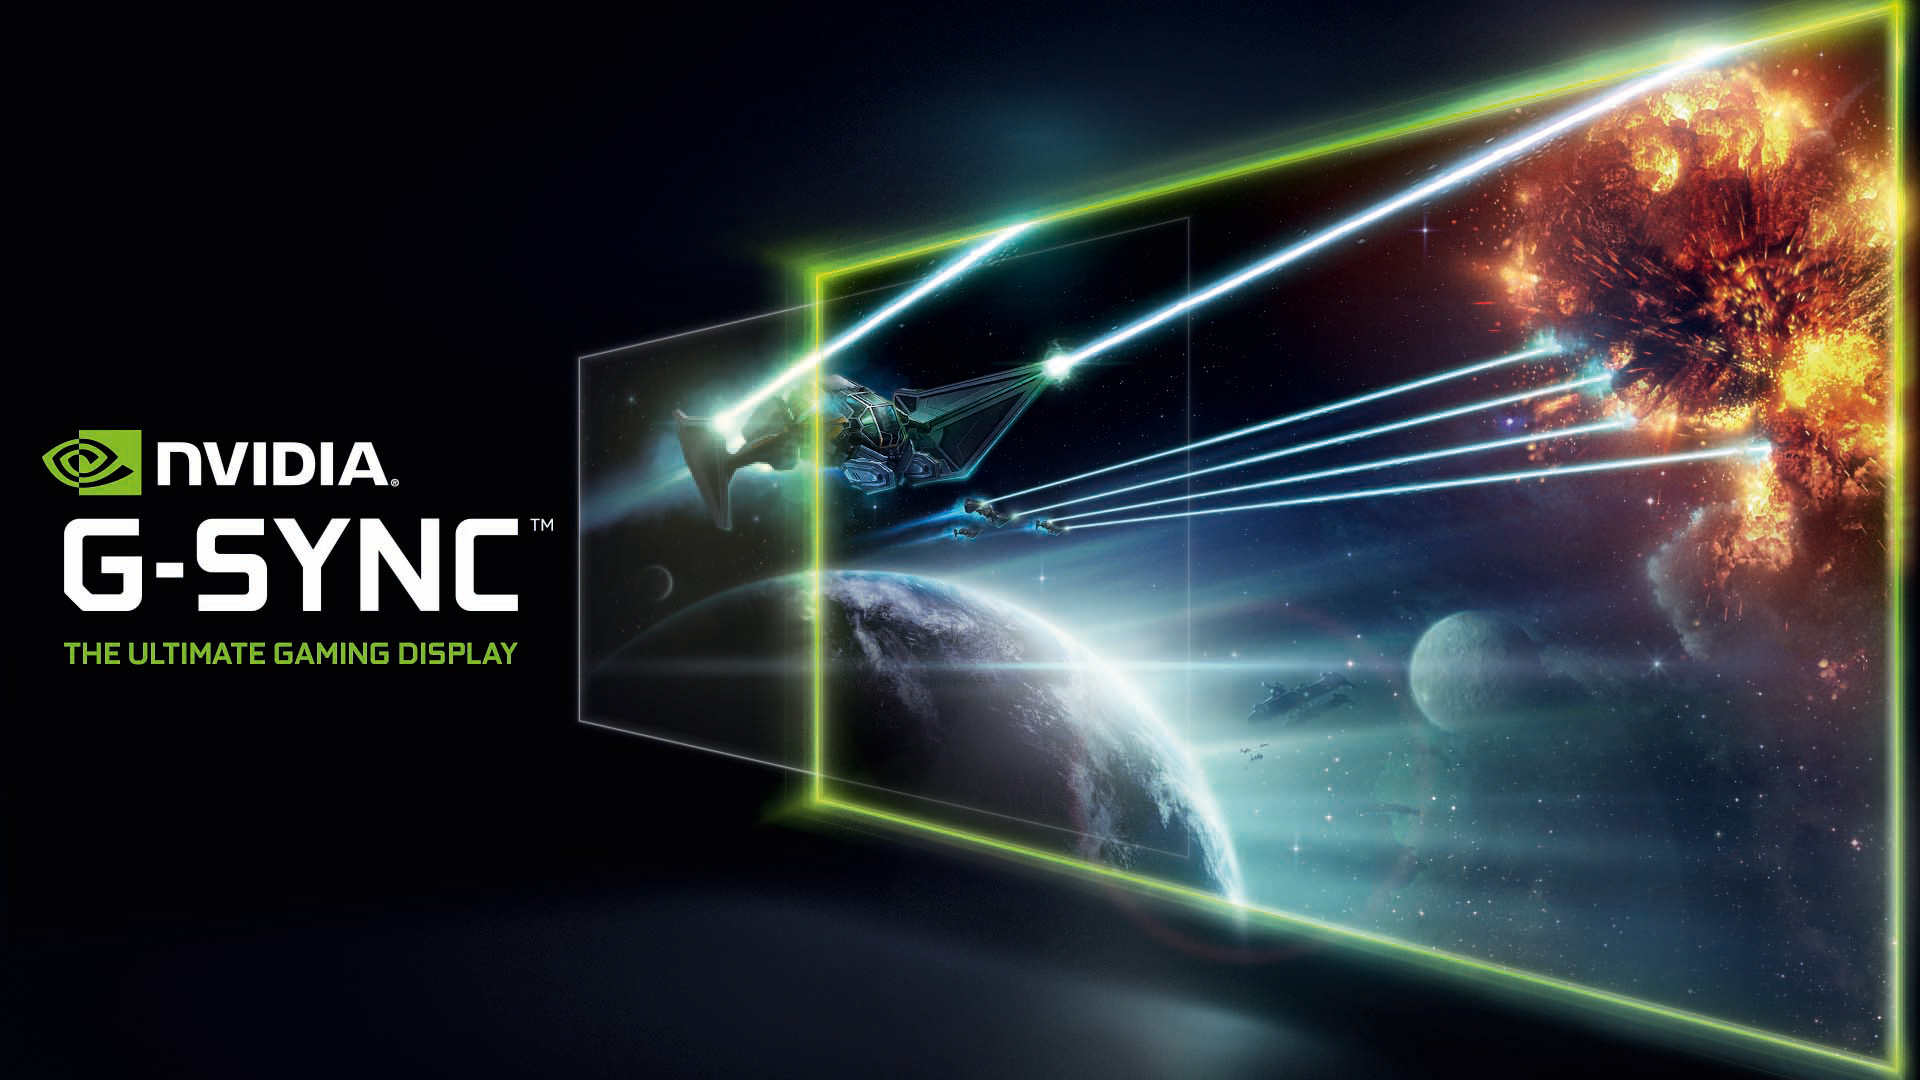 nvidia g sync ces 2017 key visual